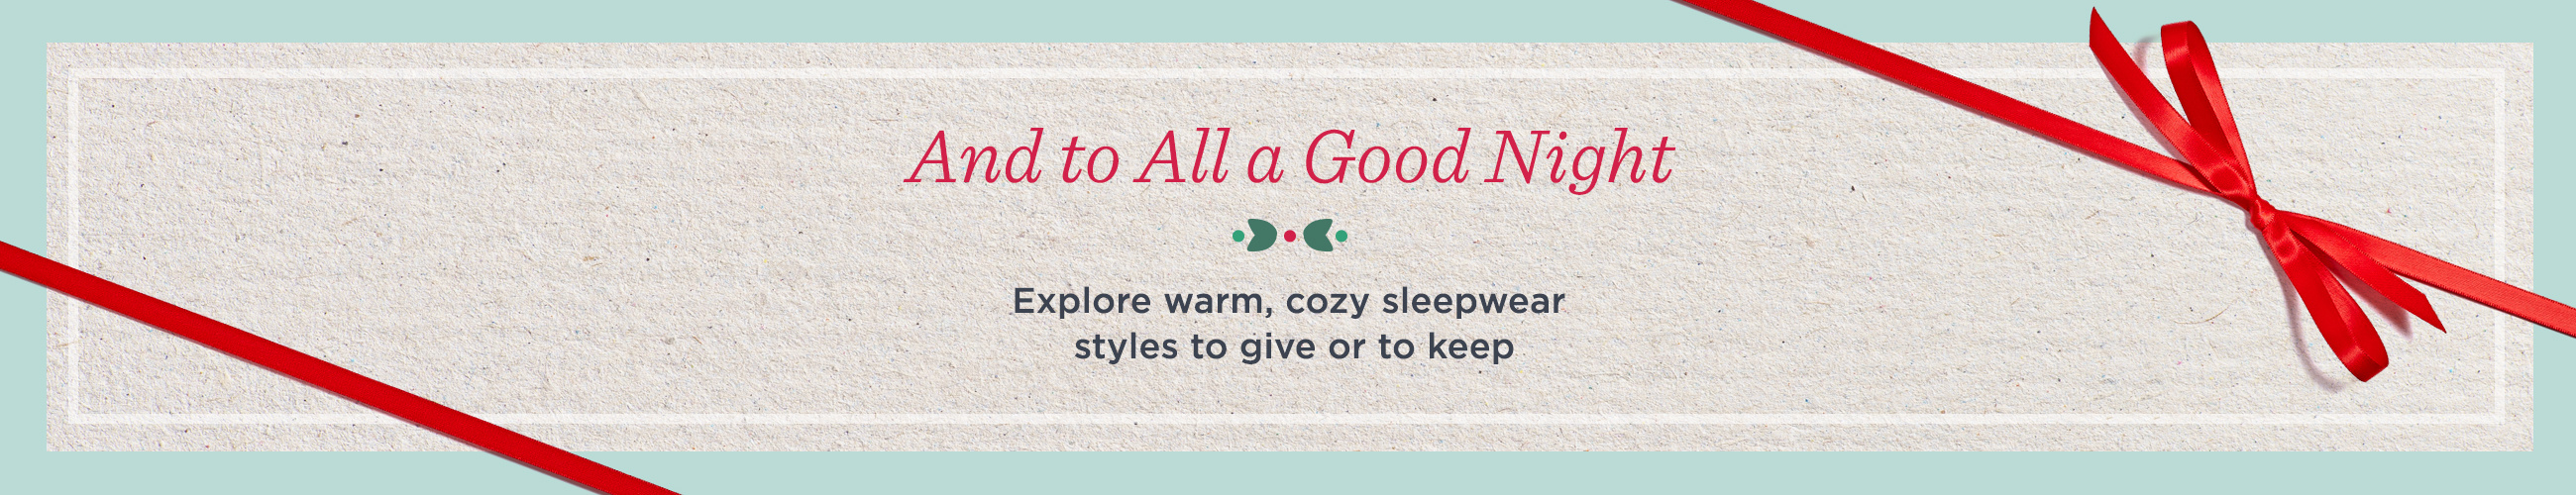 And to All a Good Night. Explore warm, cozy sleepwear styles to give or to keep